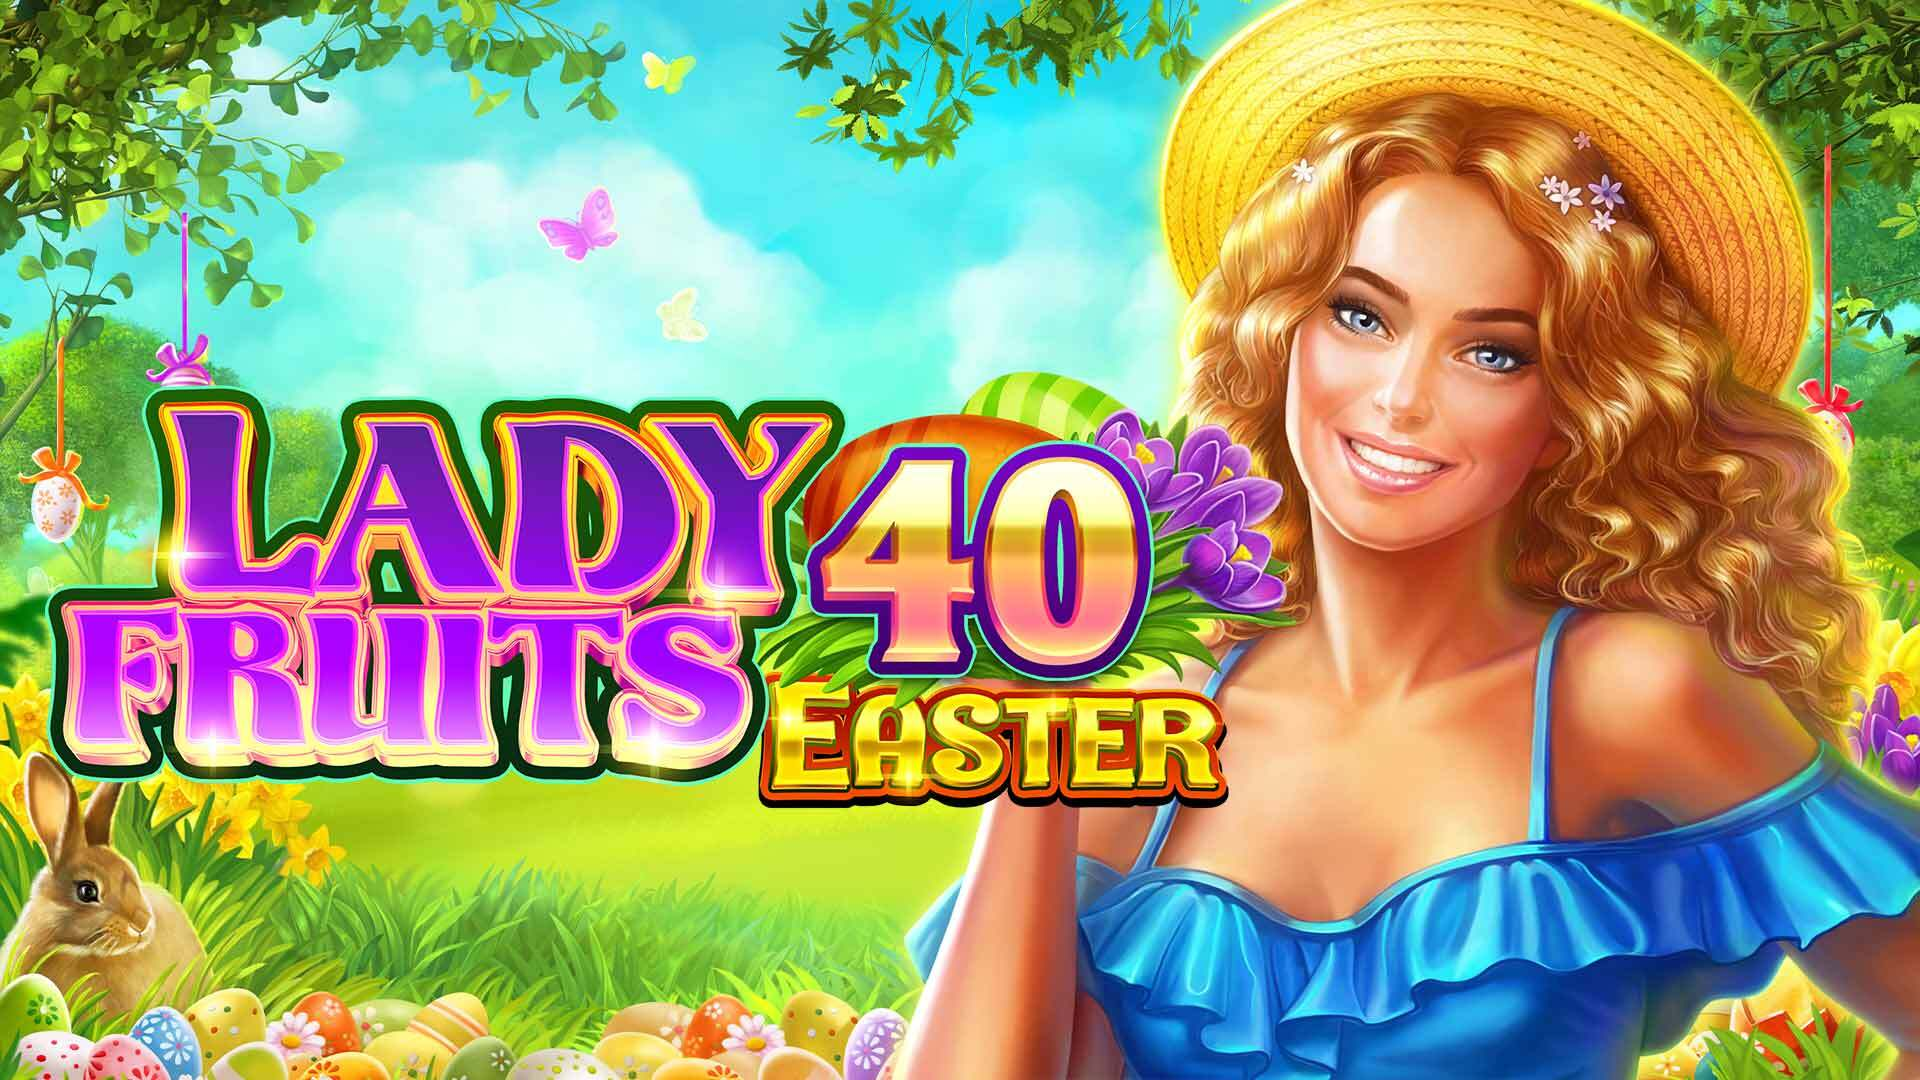 nserve---lady-fruits-40-easter-1920x1080